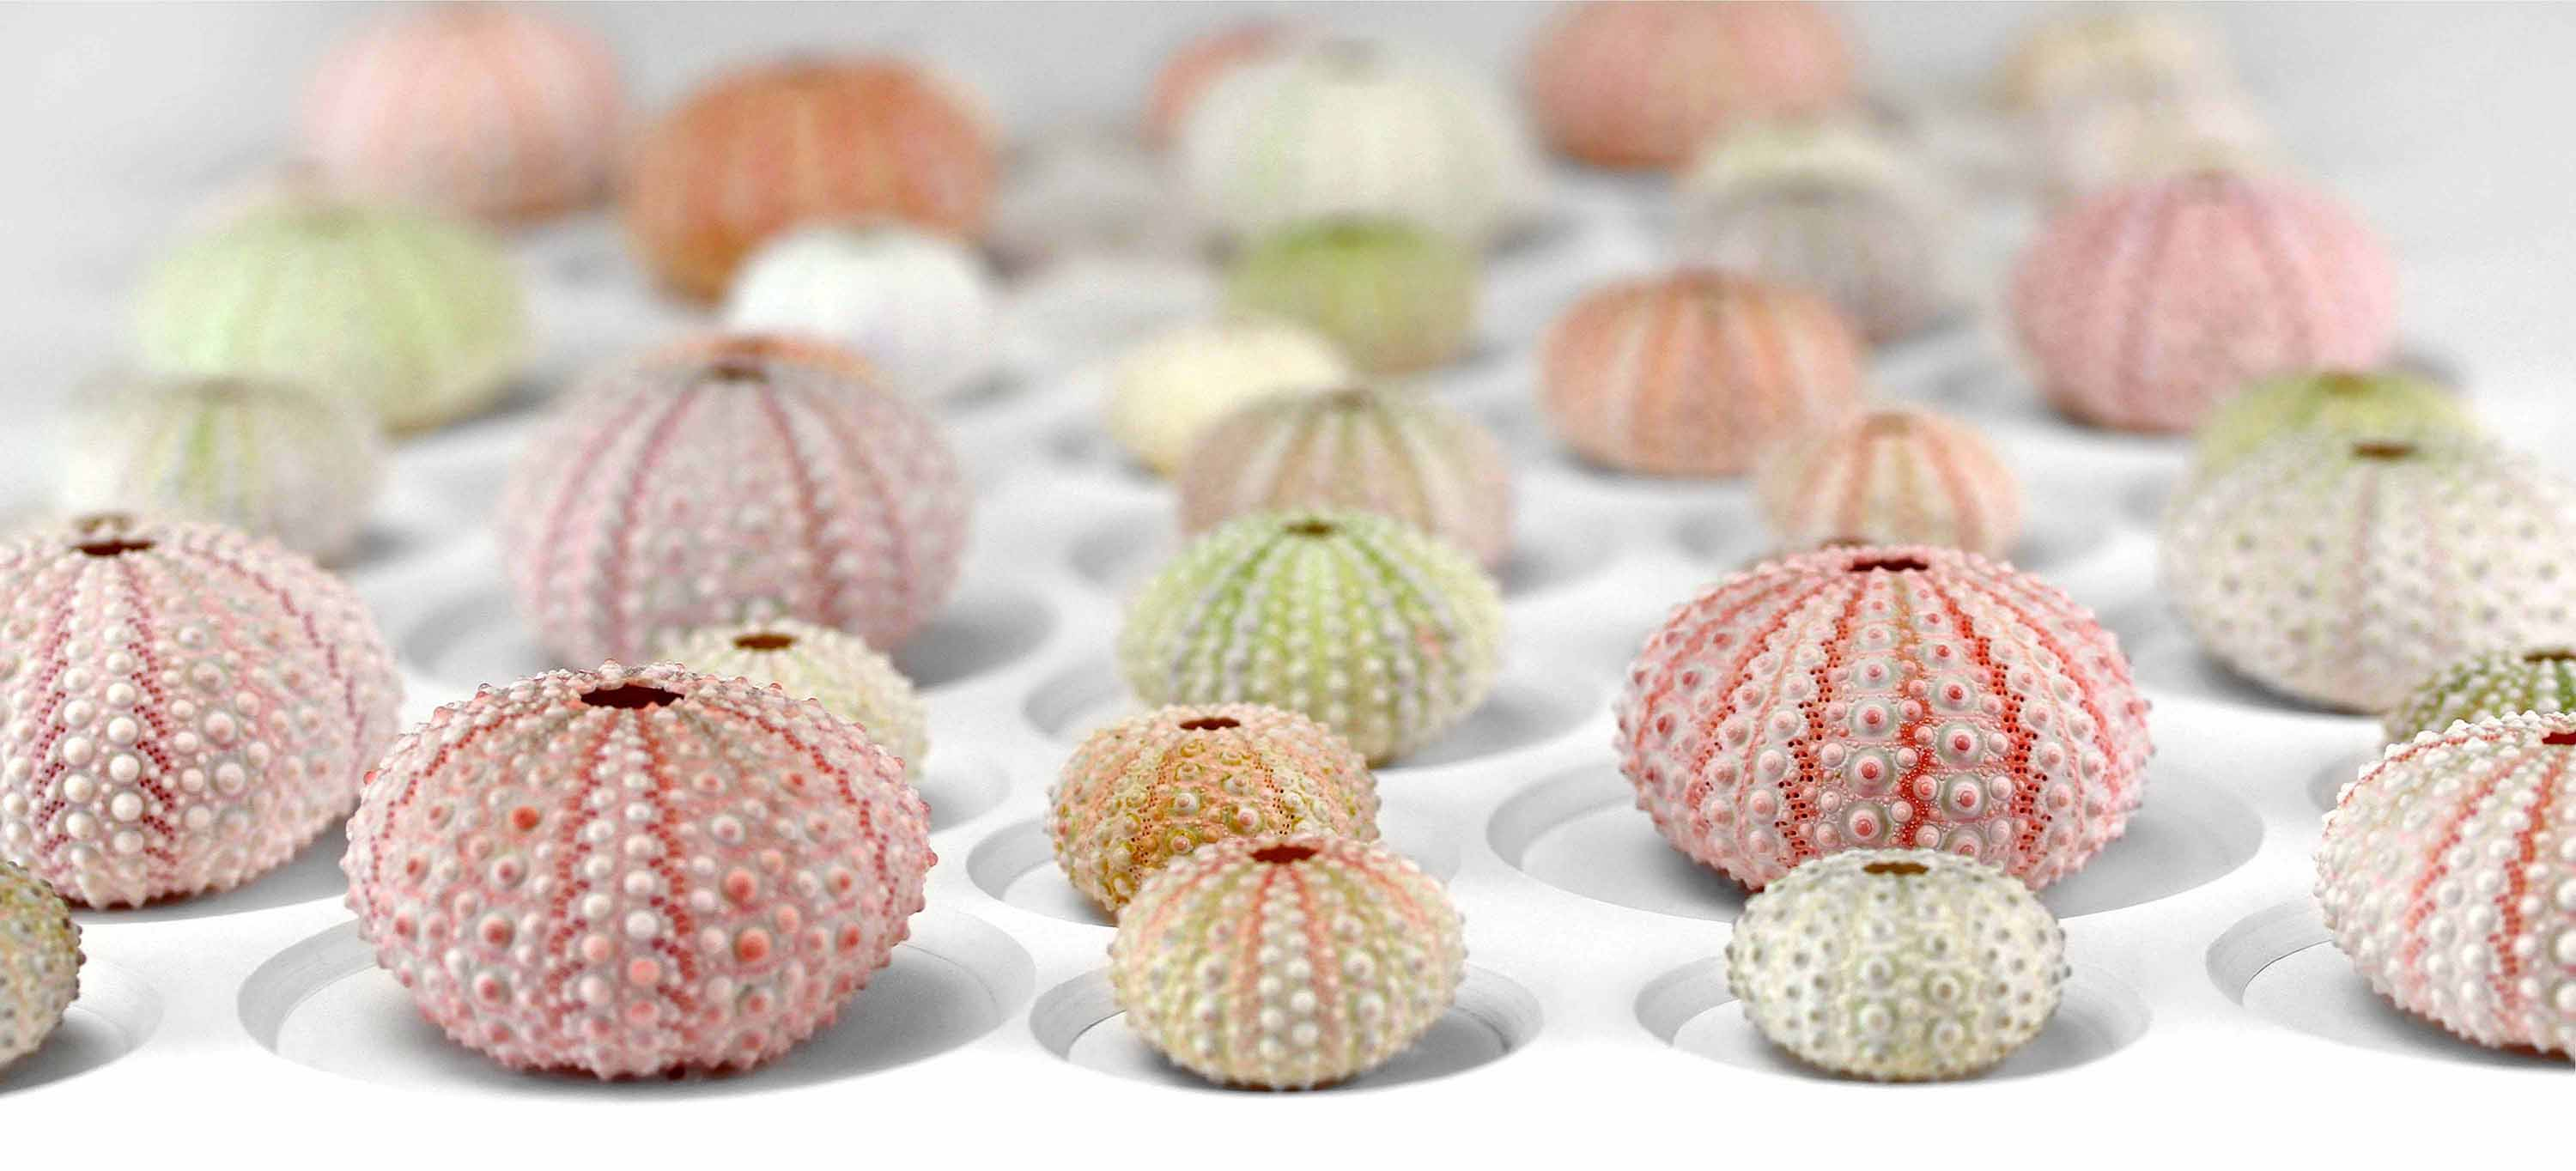 p70_Pastel-Urchin-Mosaic-website-banner-low-rez-1